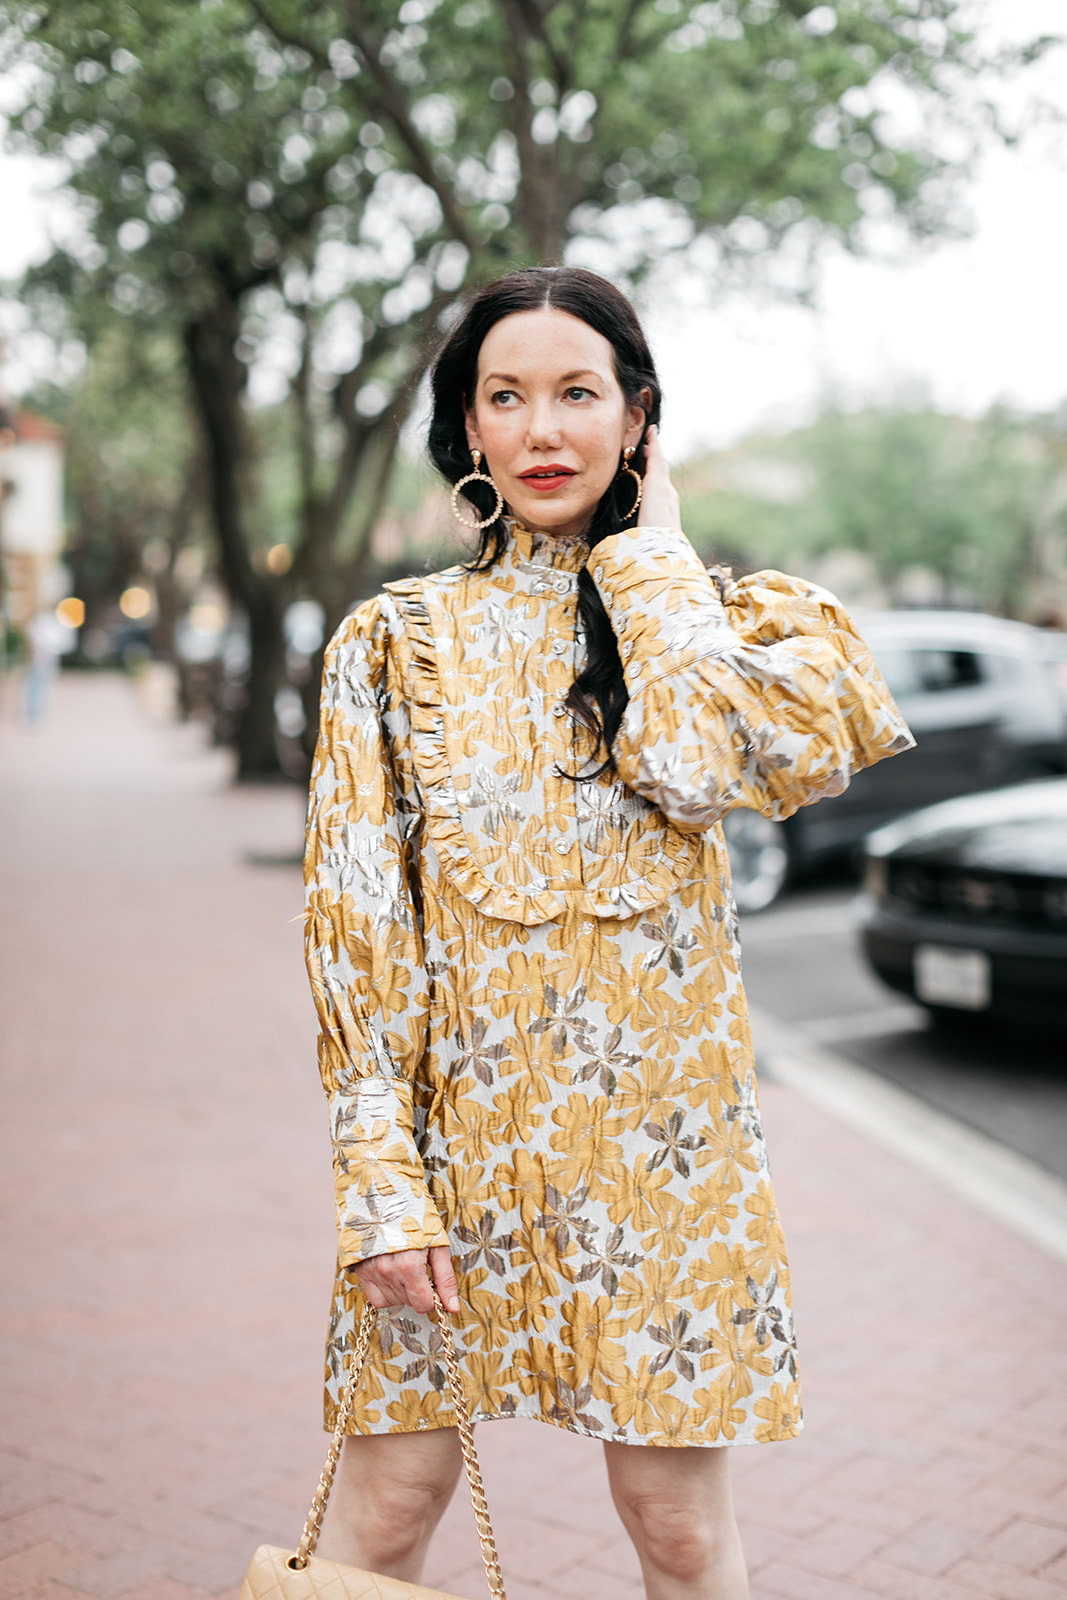 Ettika Gold Plated Statement Earrings, Sister Jane Cocktail Dress   Cocktail Dress by popular Dallas fashion blog, Pretty Little Shoppers: image of a woman walking outside on a brick paved sidewalk and wearing a Sister Jane Cocktail Dress, Chanel Bag, Jimmy Choo Sandals, and Ettika earrings.